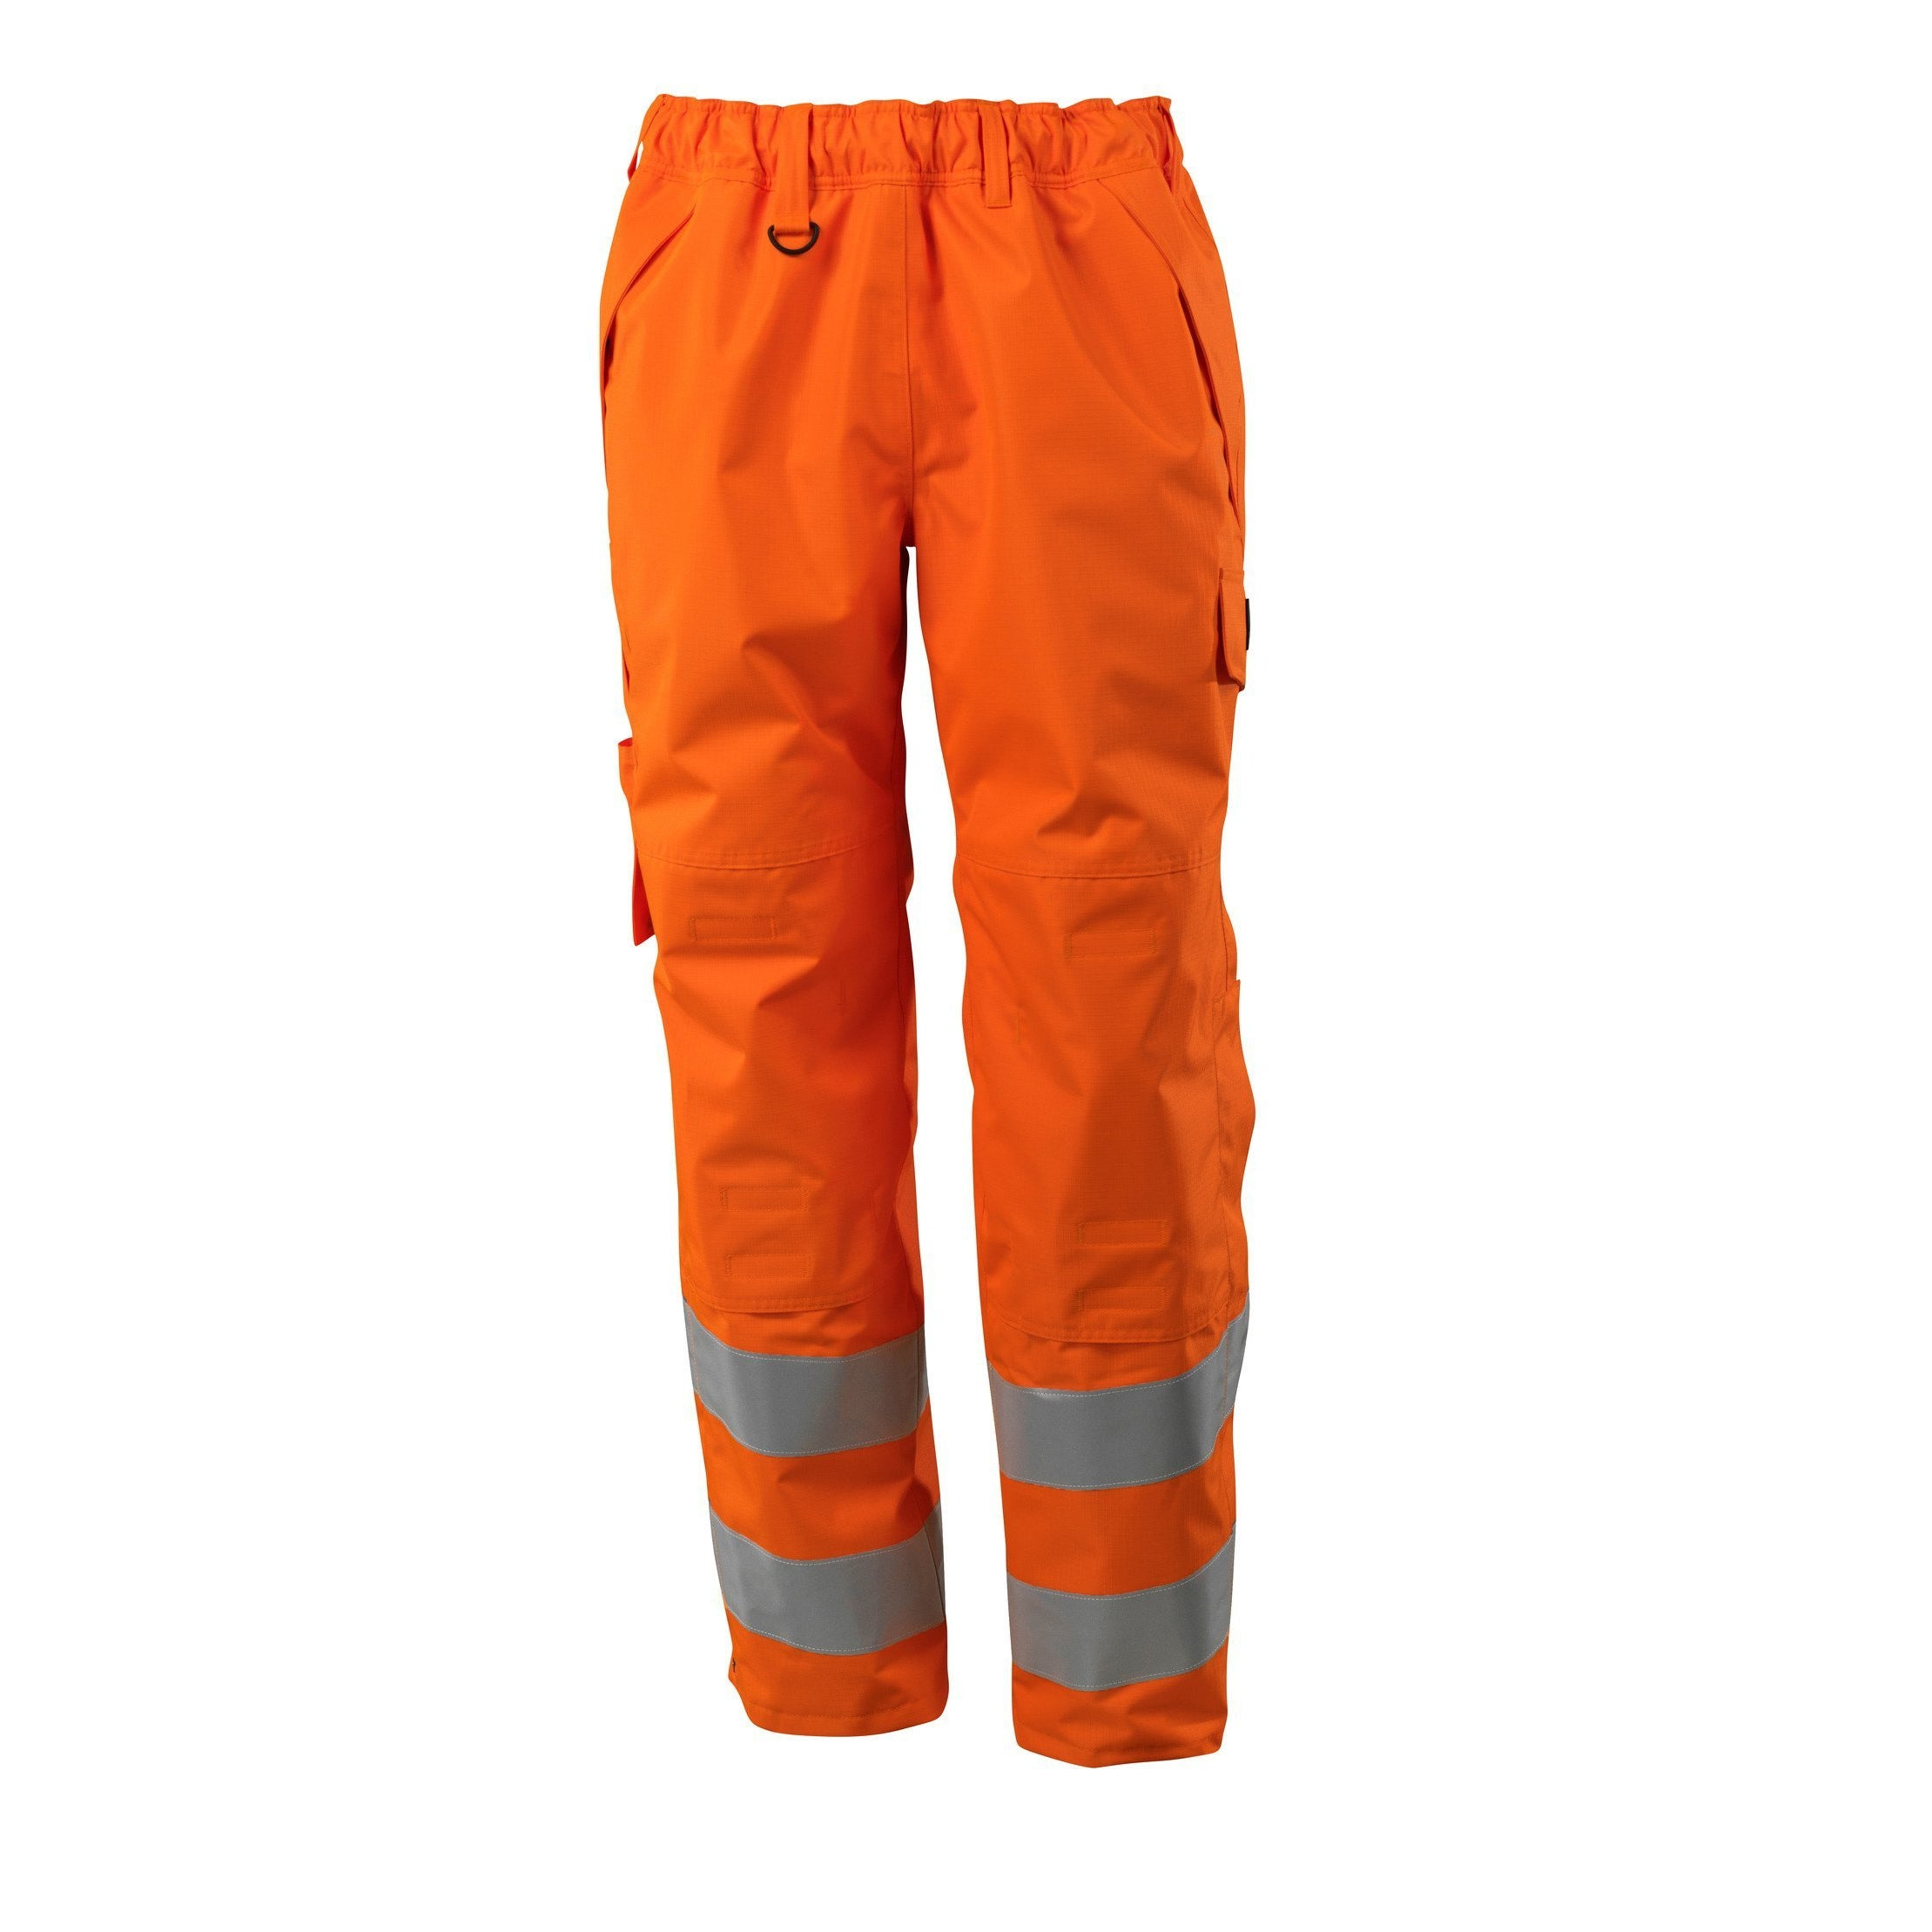 Mascot Belfast Safe Supreme Over Trousers With Kneepad Pockets